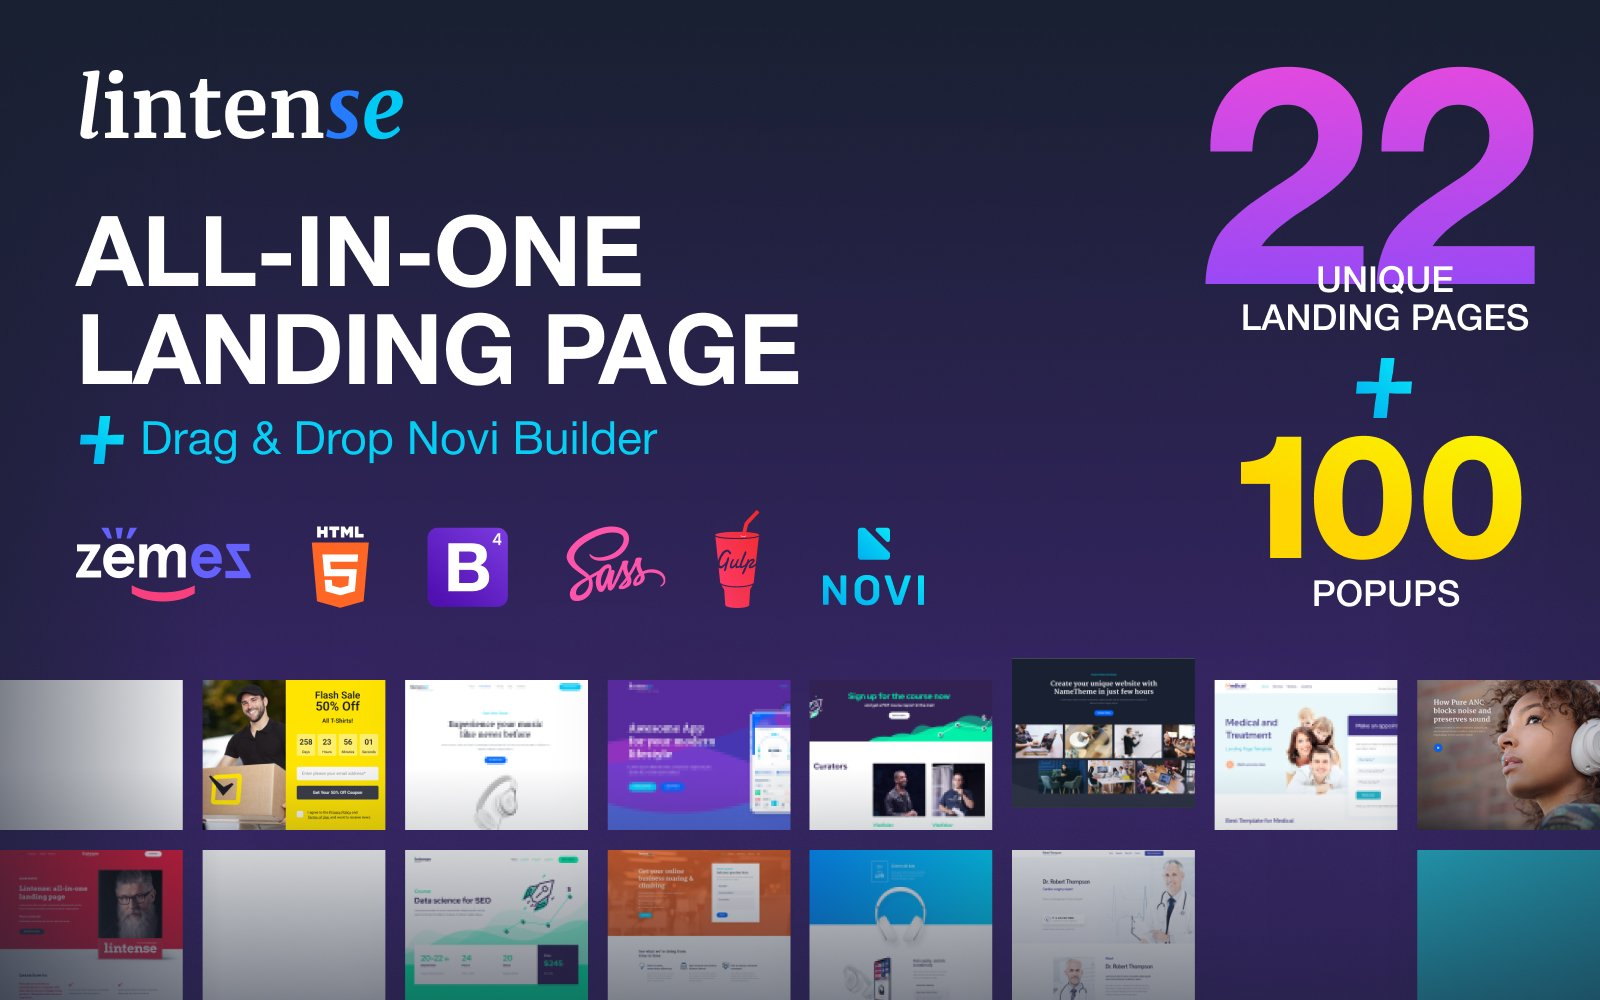 Responsywny szablon Landing Page Lintense - All-in-one #84721